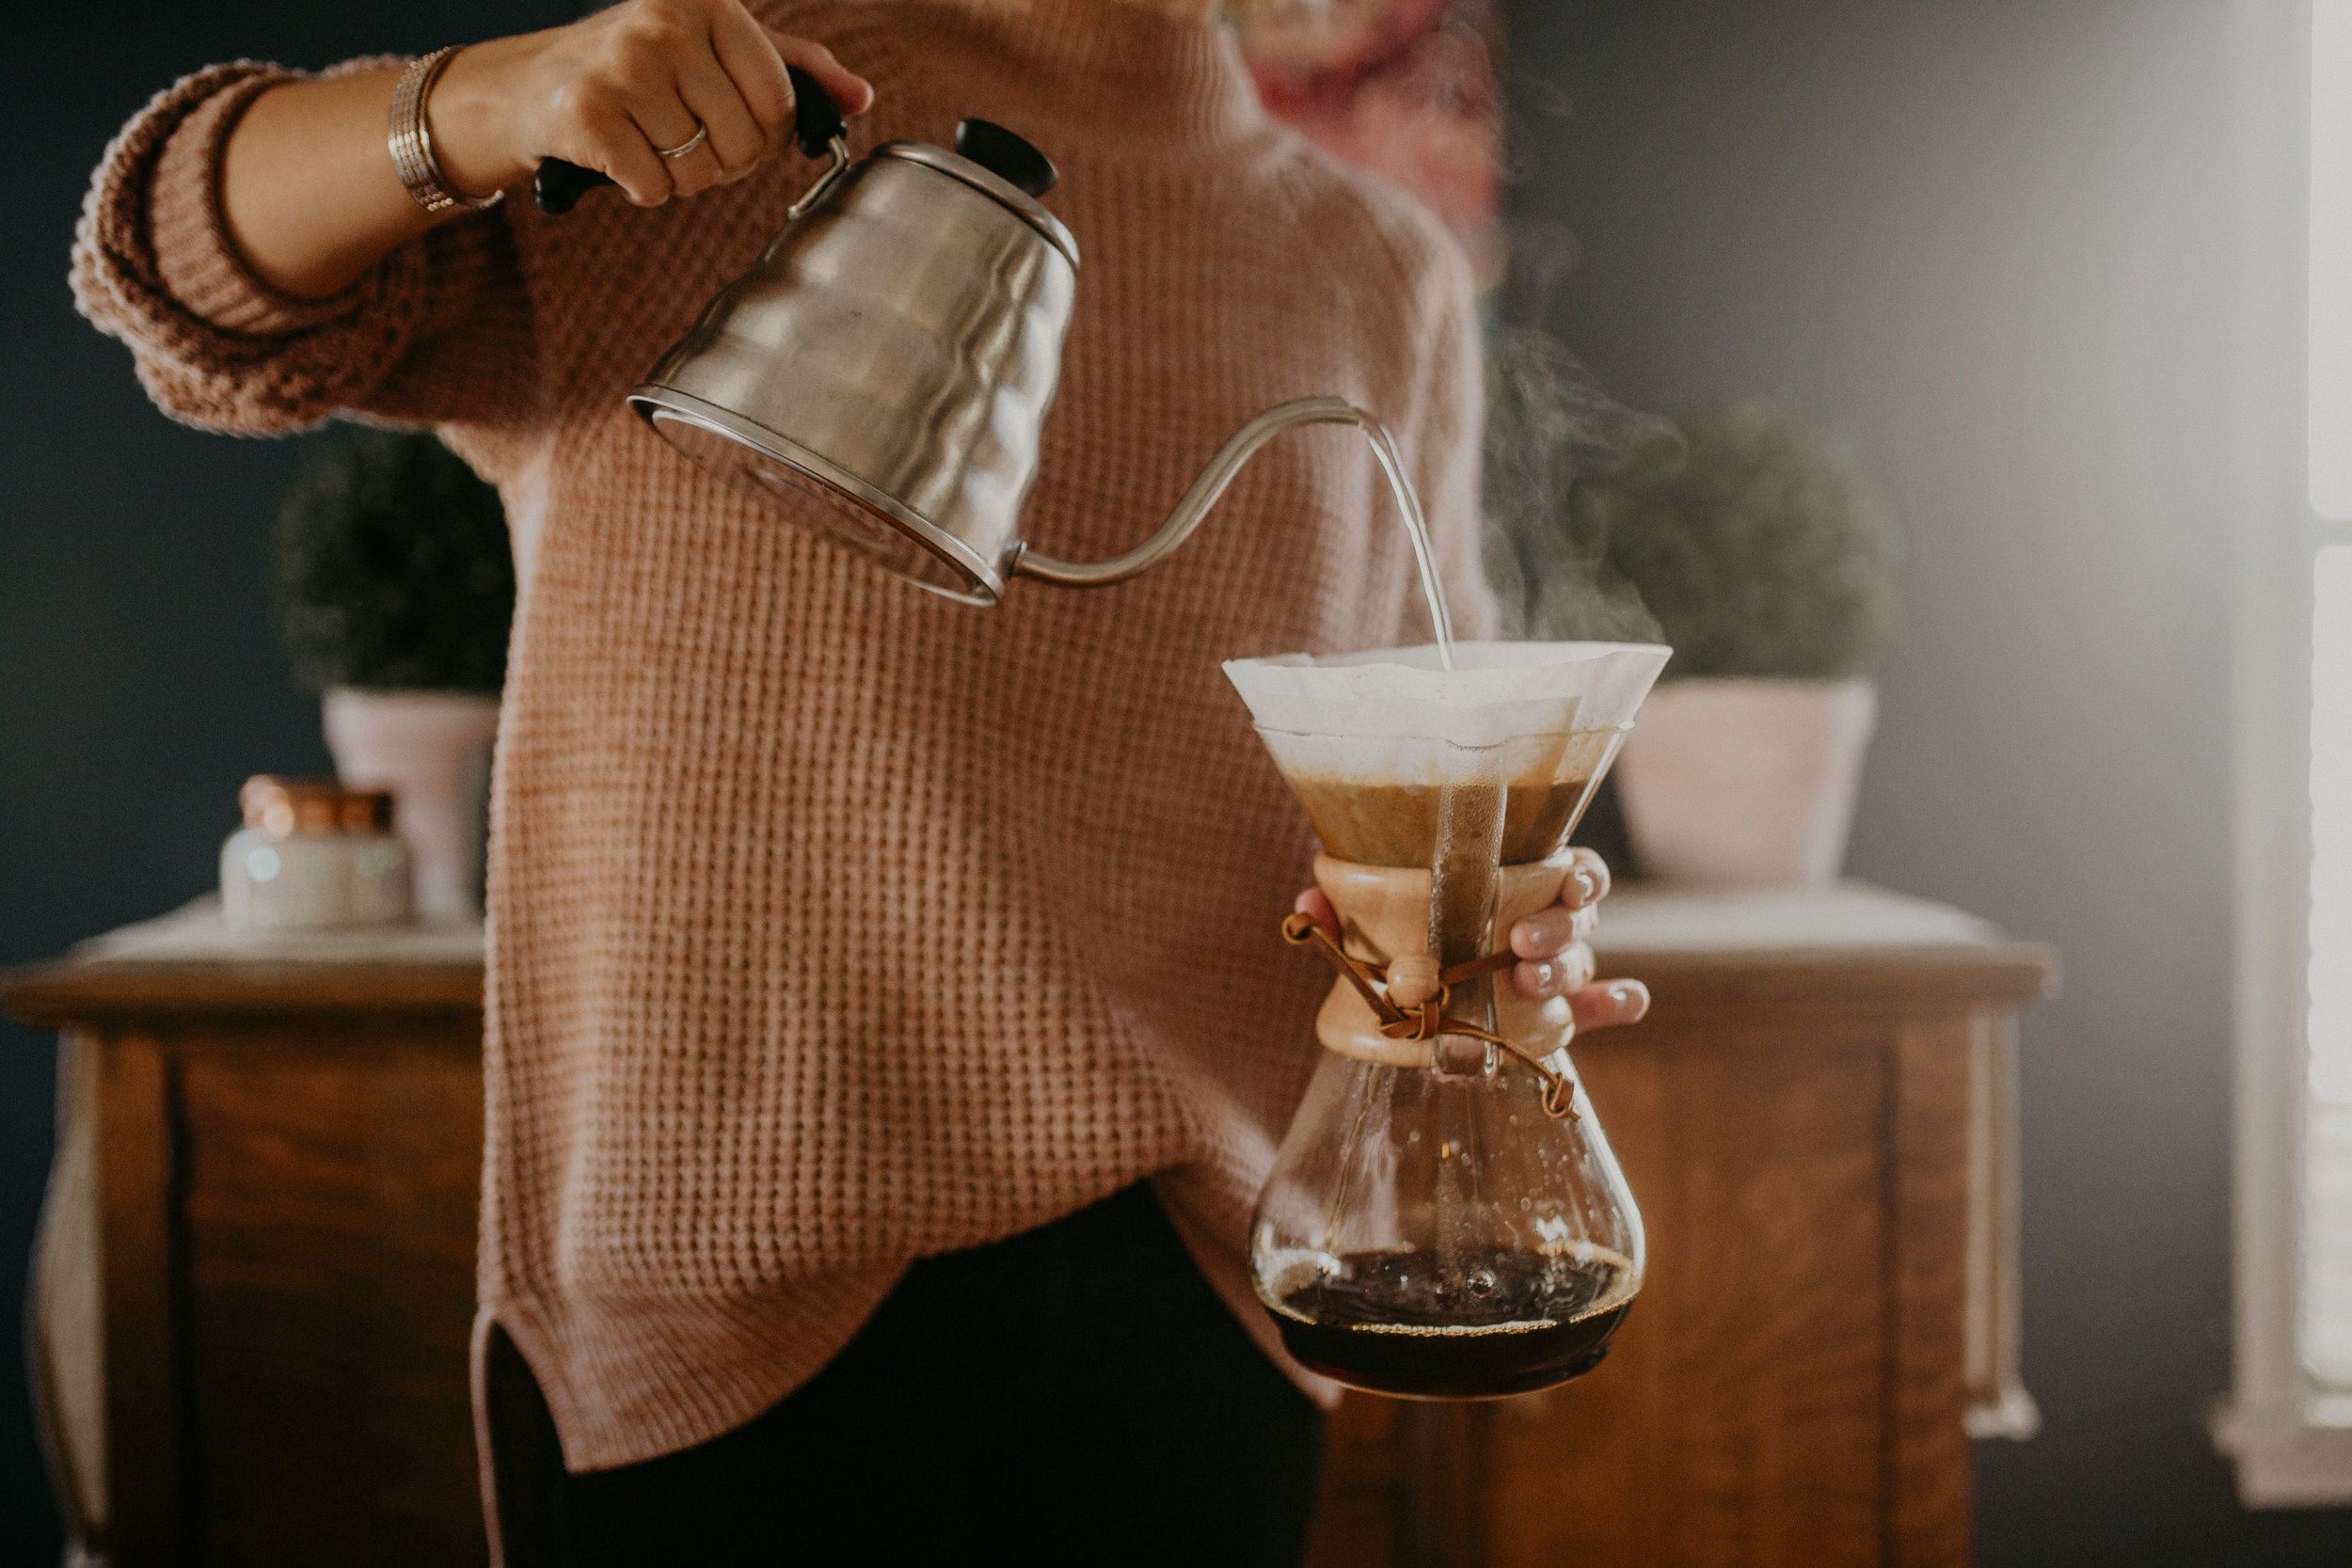 Shop the  pour-over kettle  and  Chemex coffeemaker